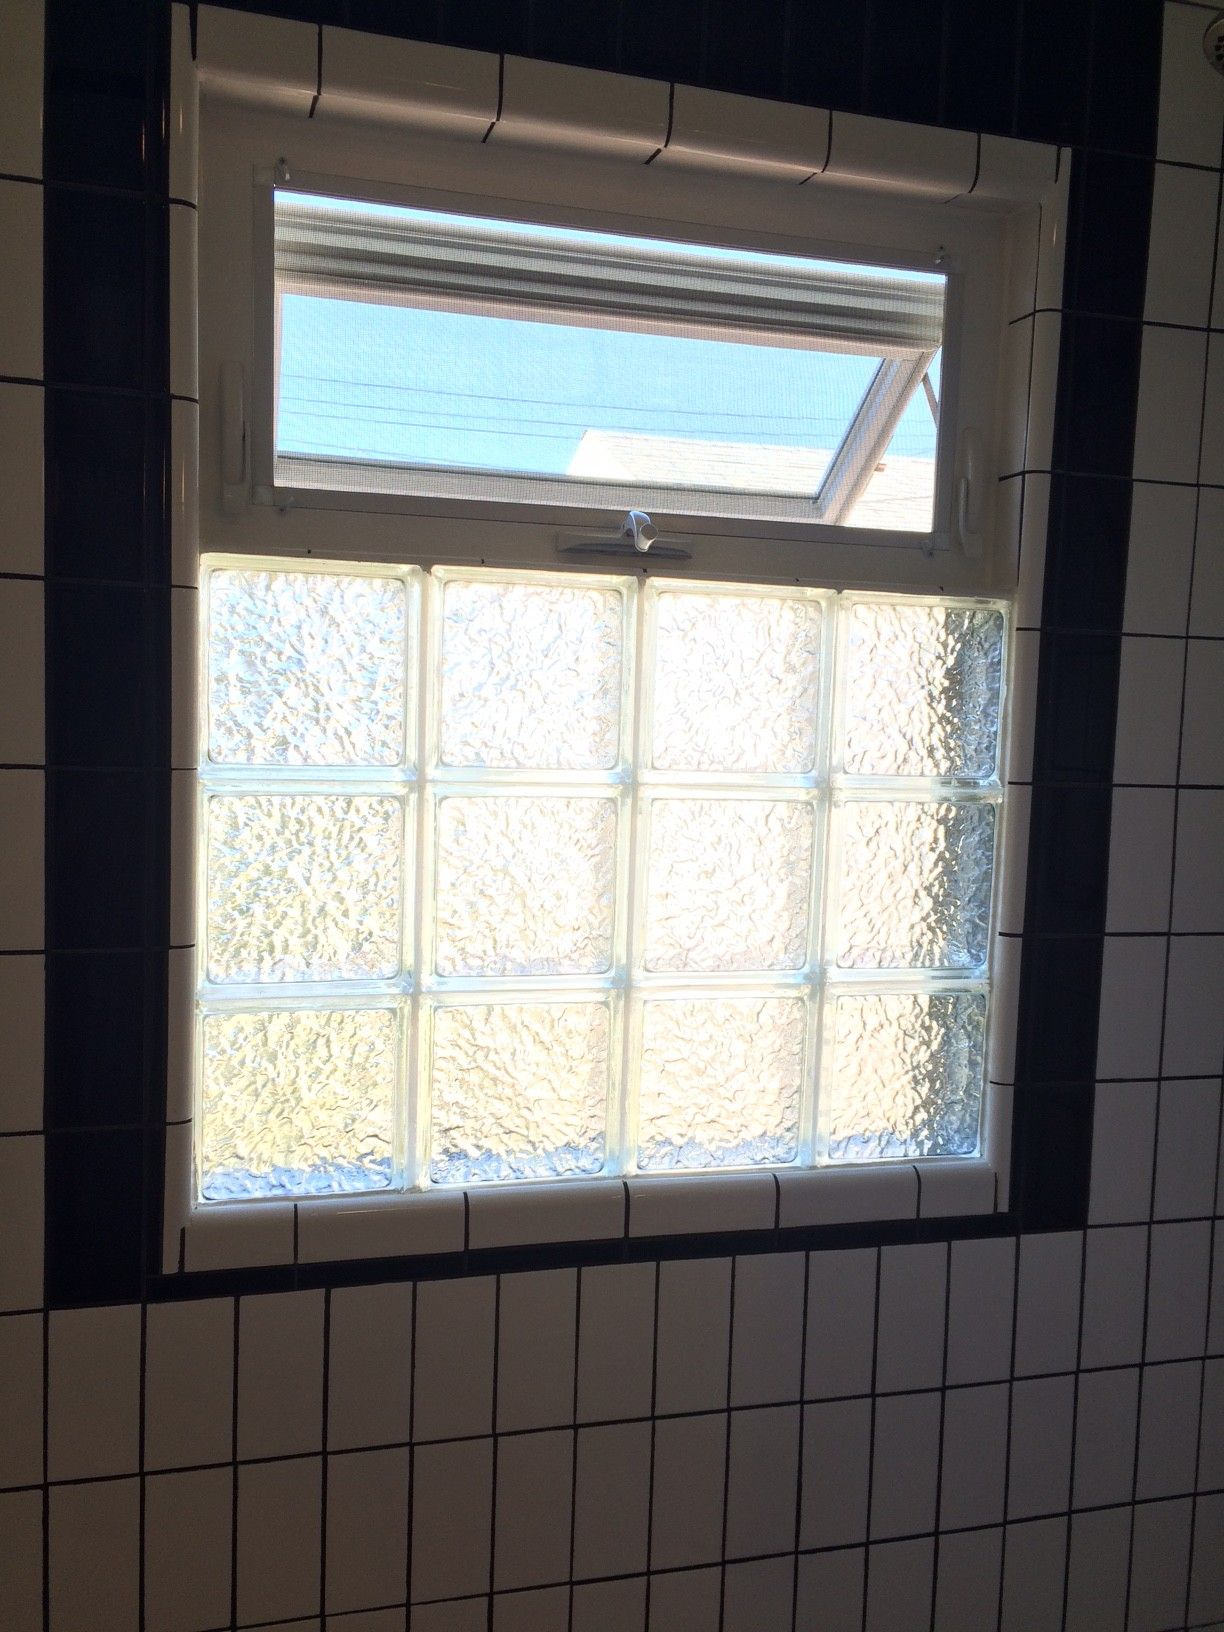 Gl Block Window In Shower Area Mycoffeepot Org